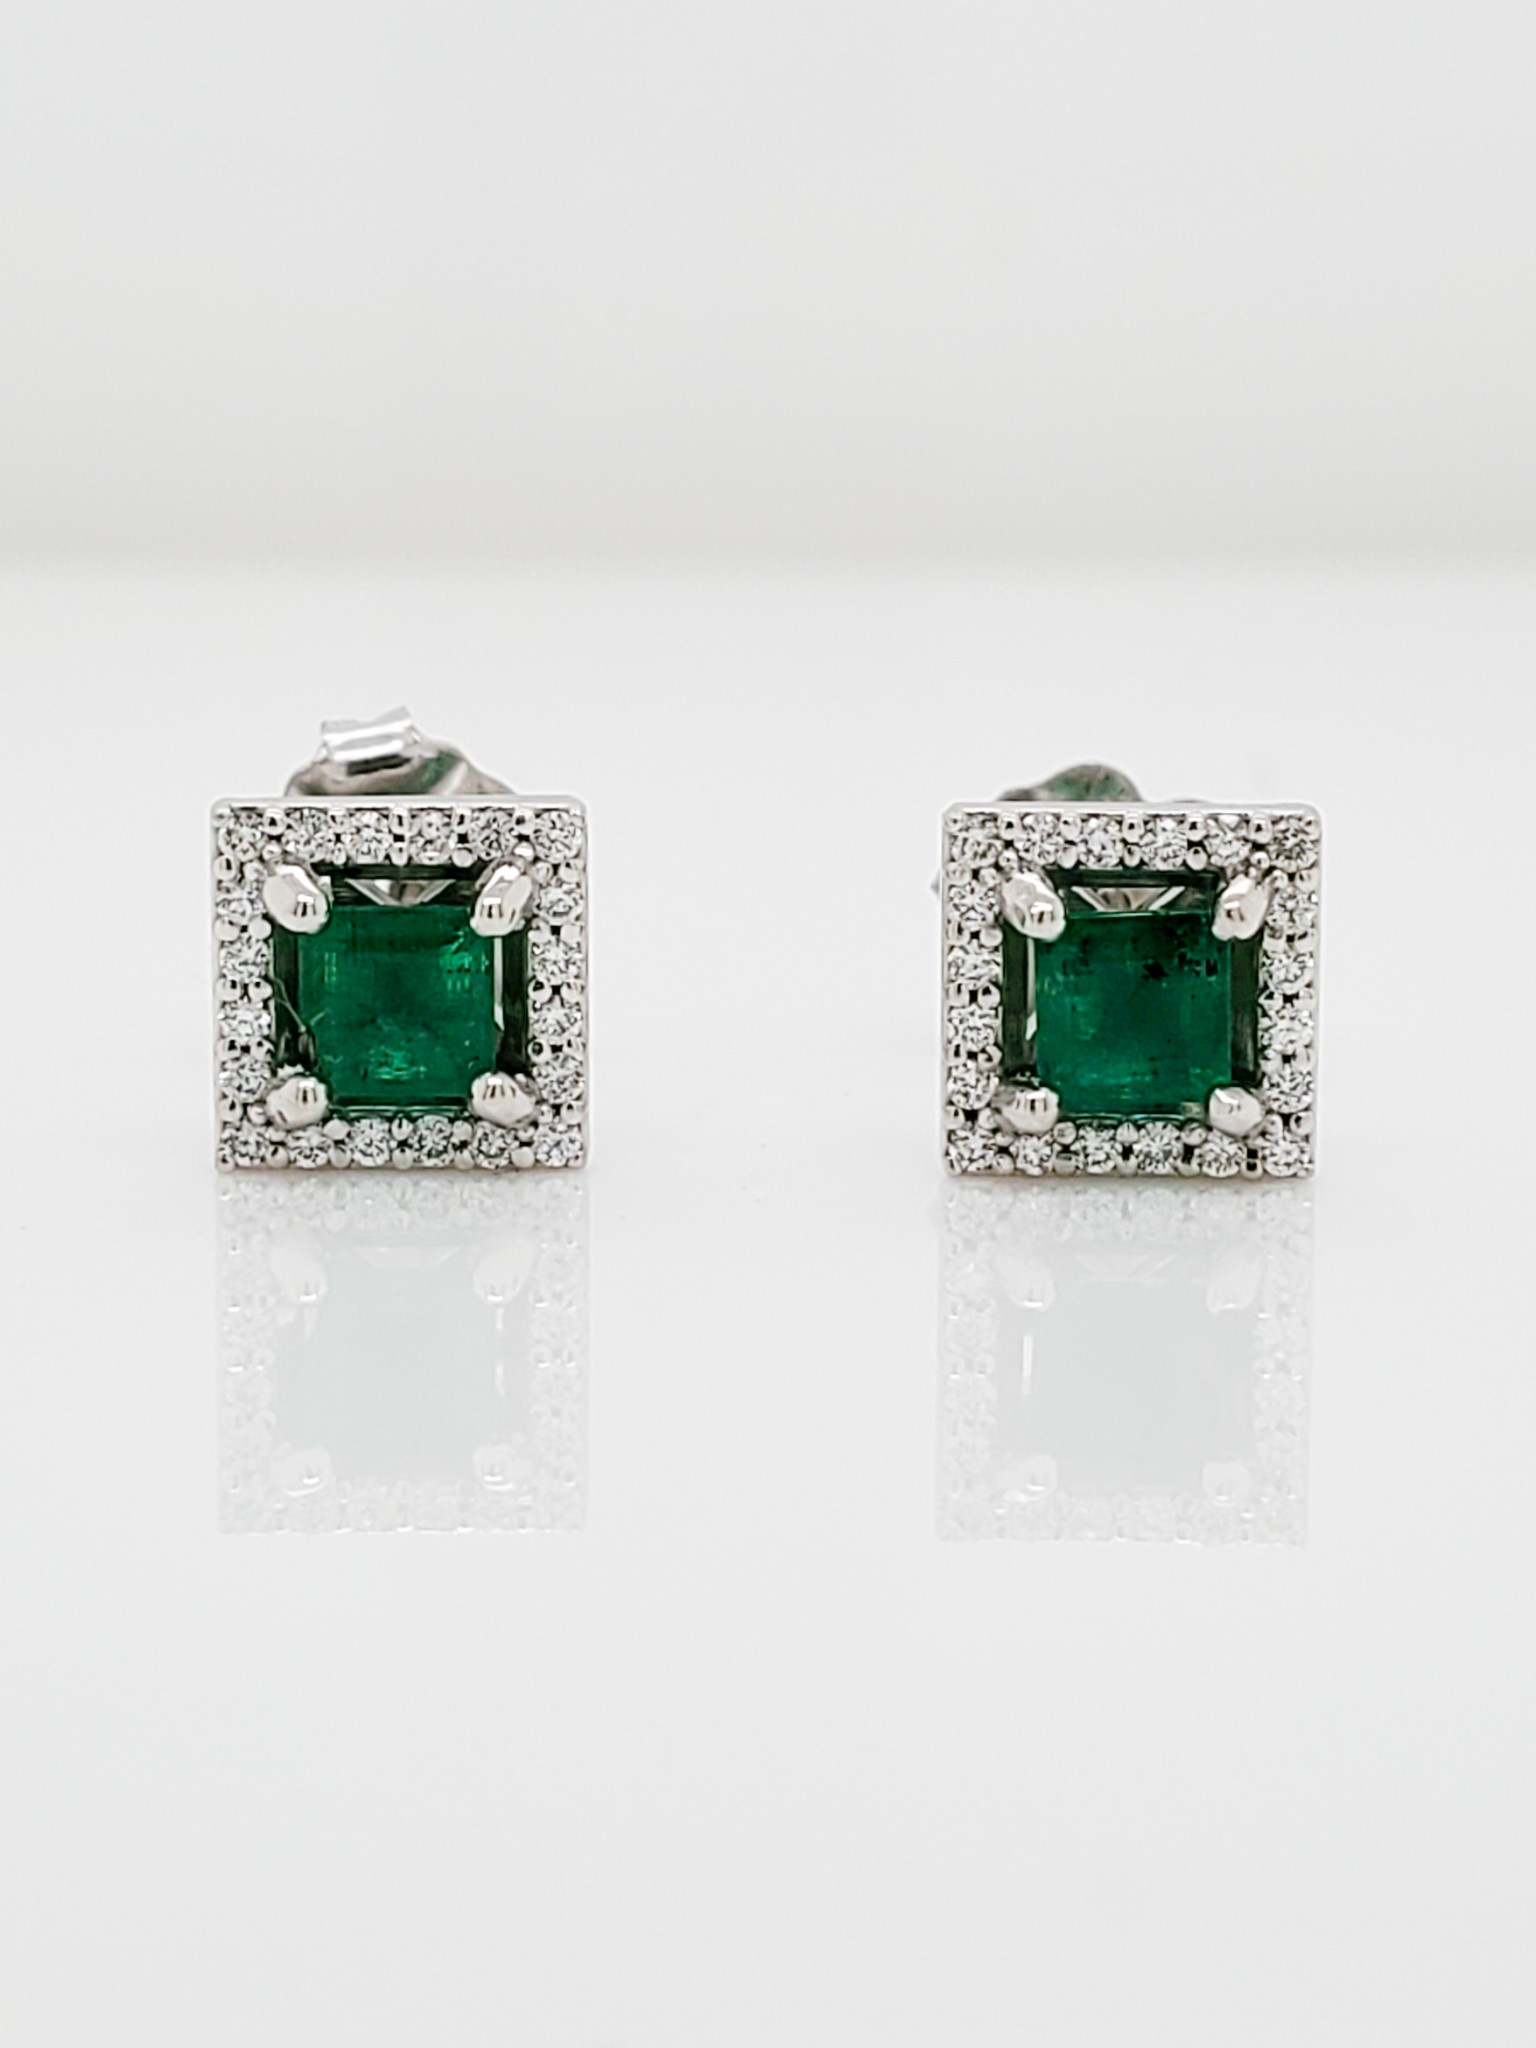 14KT White Gold Square Emerald Diamond Halo Earrings 1/10 CTTW